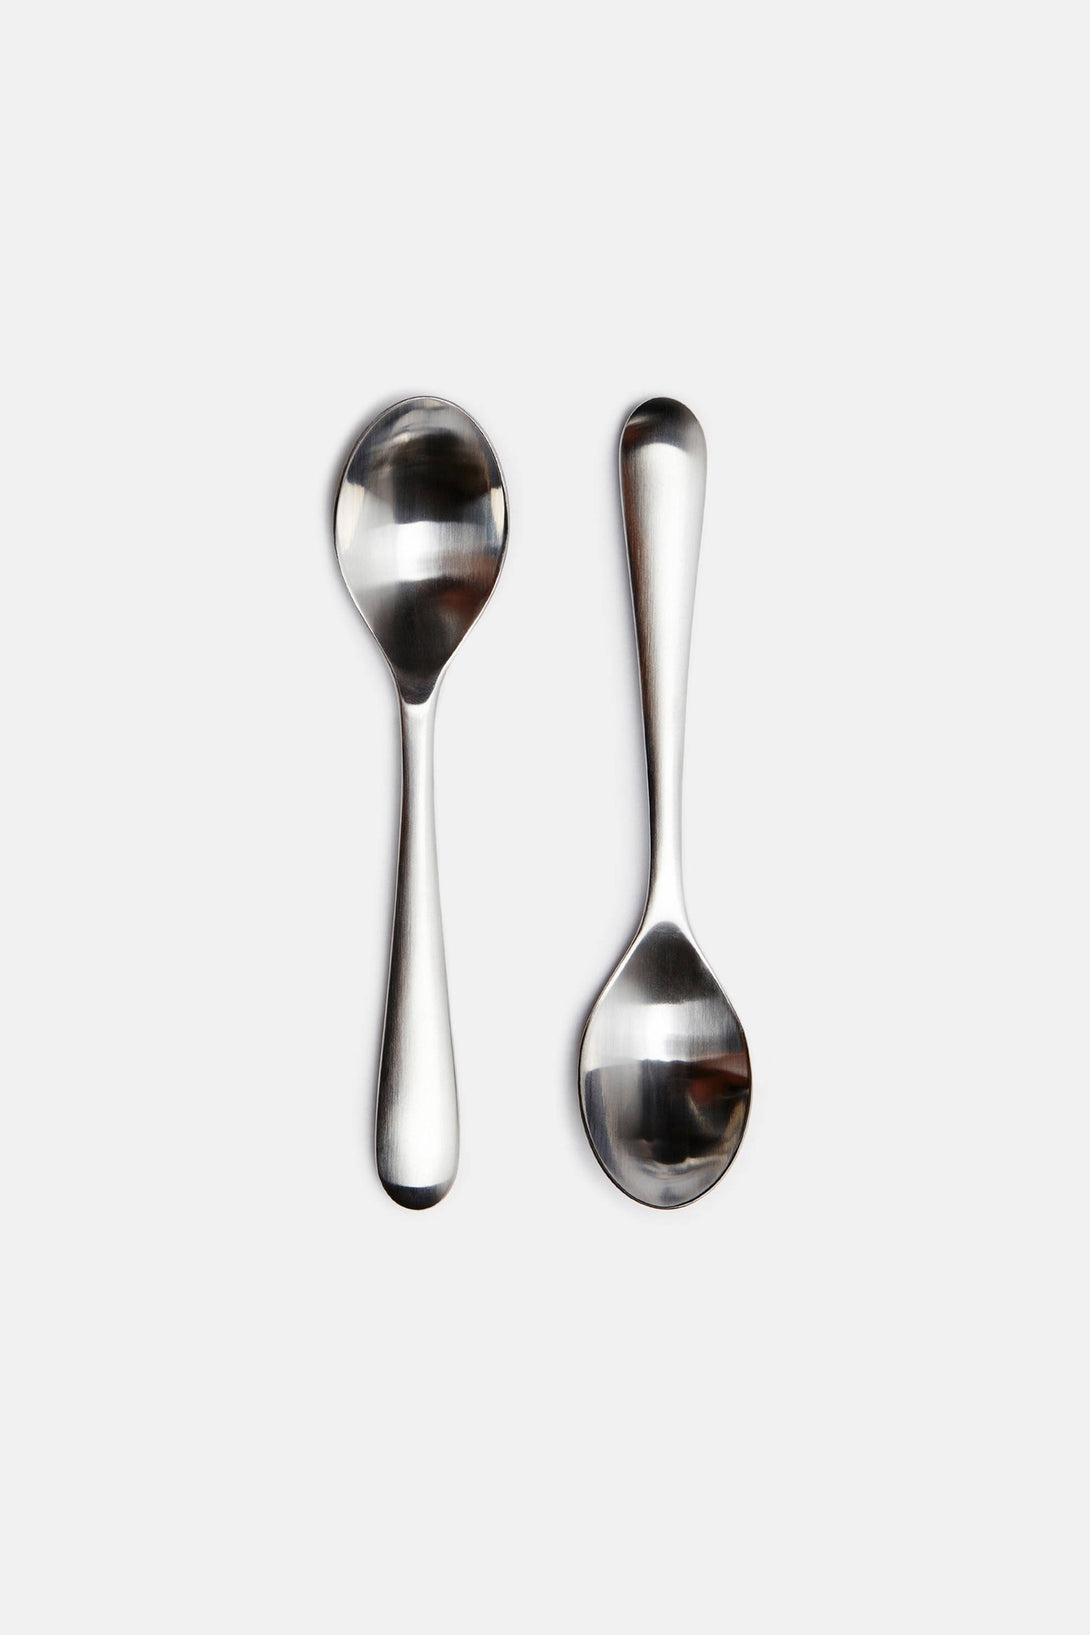 Stockholm Coffee Spoon - Set of 2